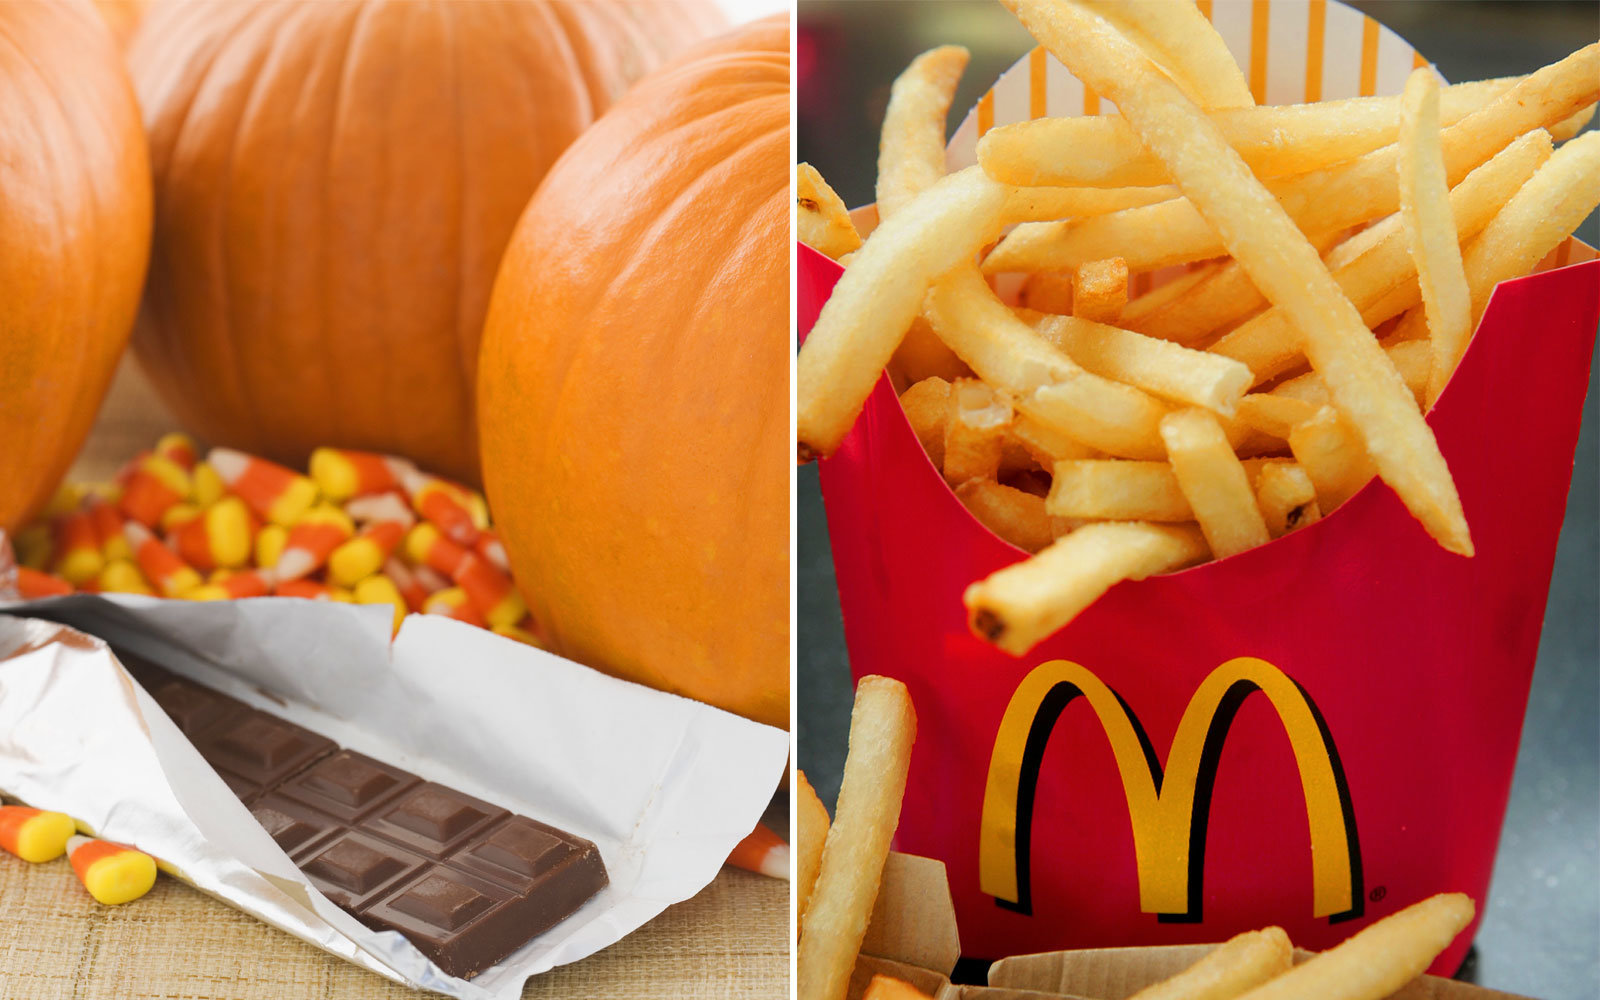 McDonald's Is Selling Pumpkin Chocolate French Fries Because It's Fall, People